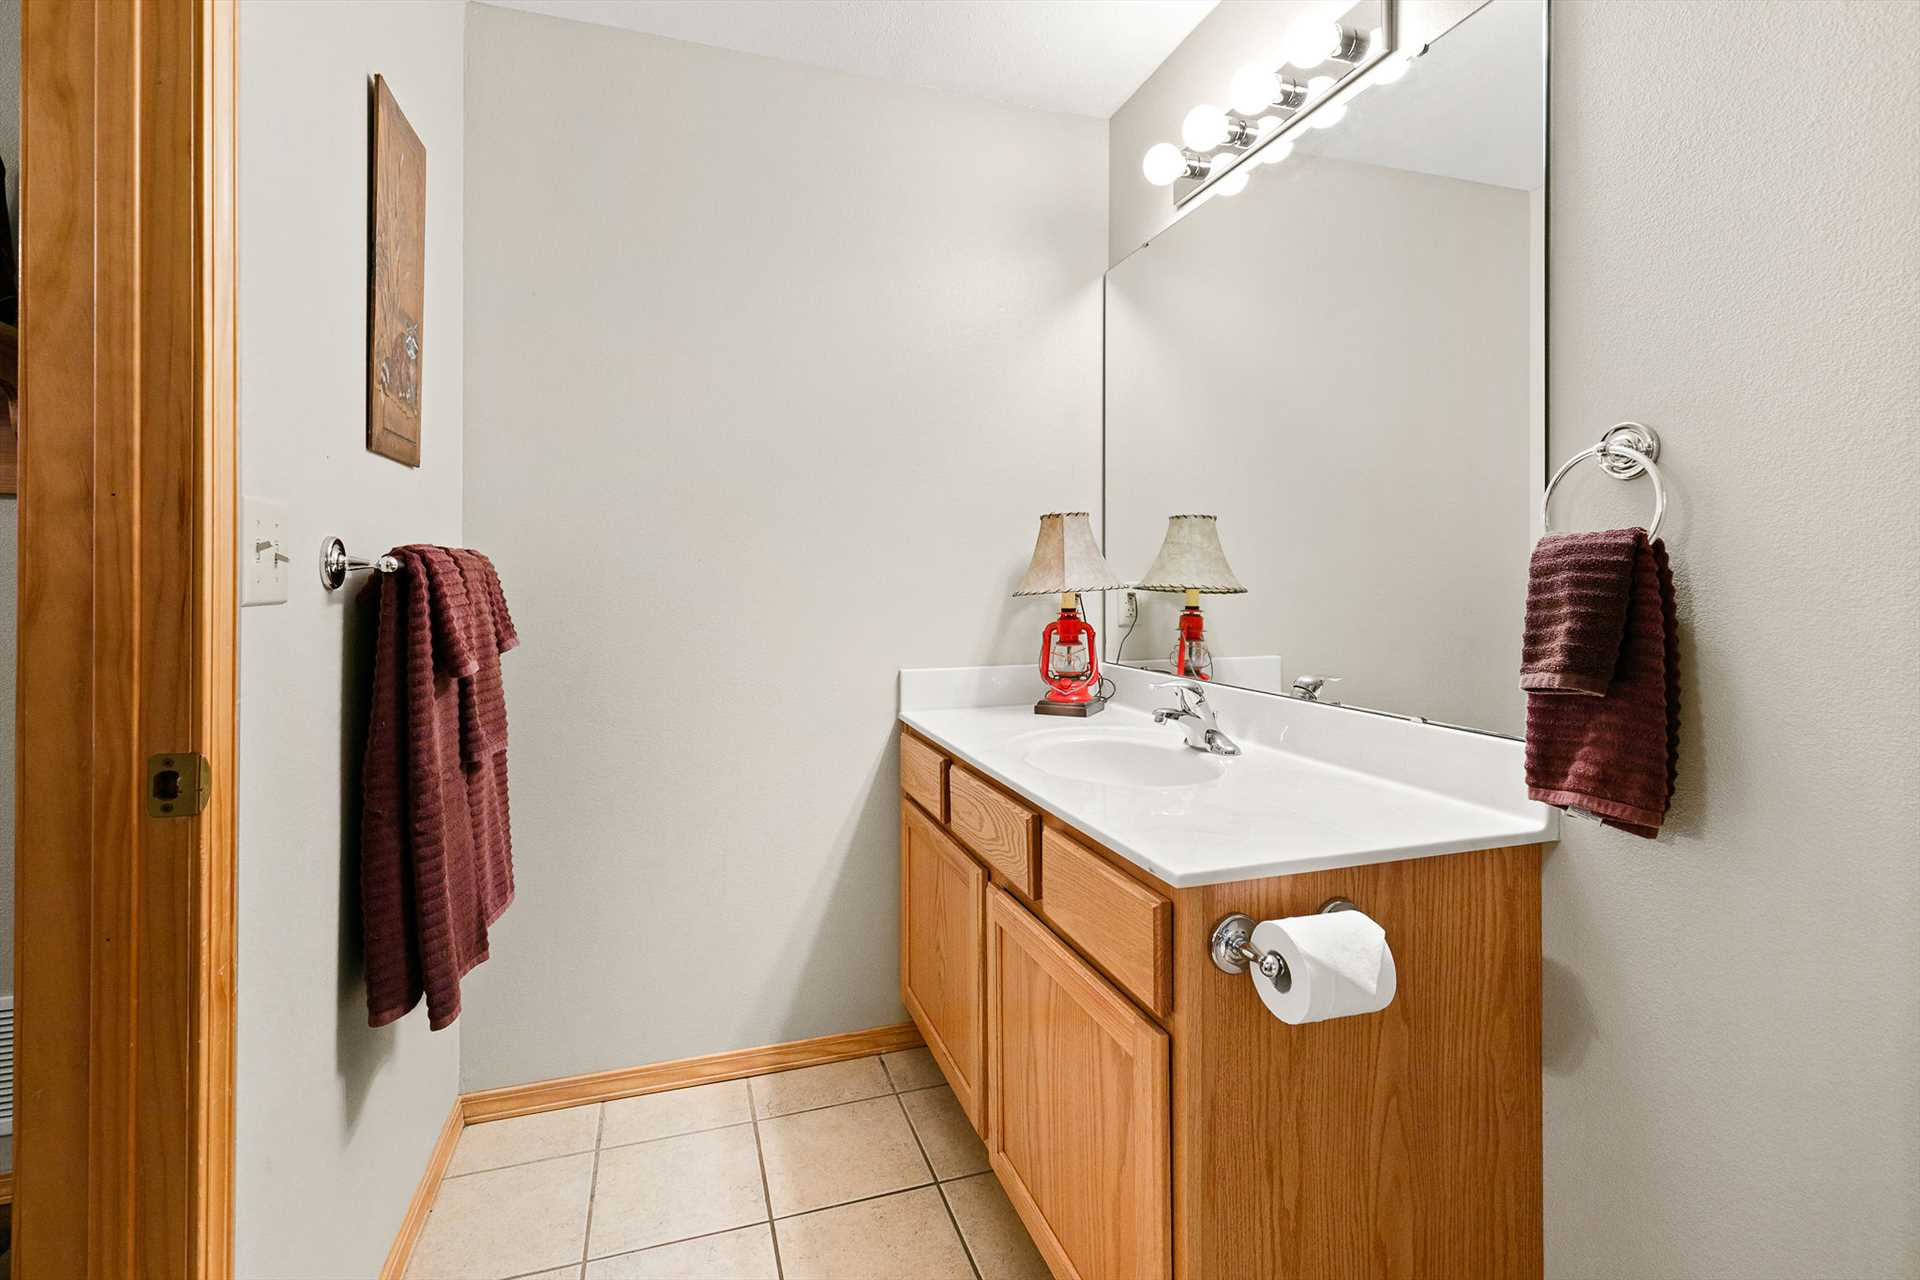 The attached bathroom has a large tub and shower combo.